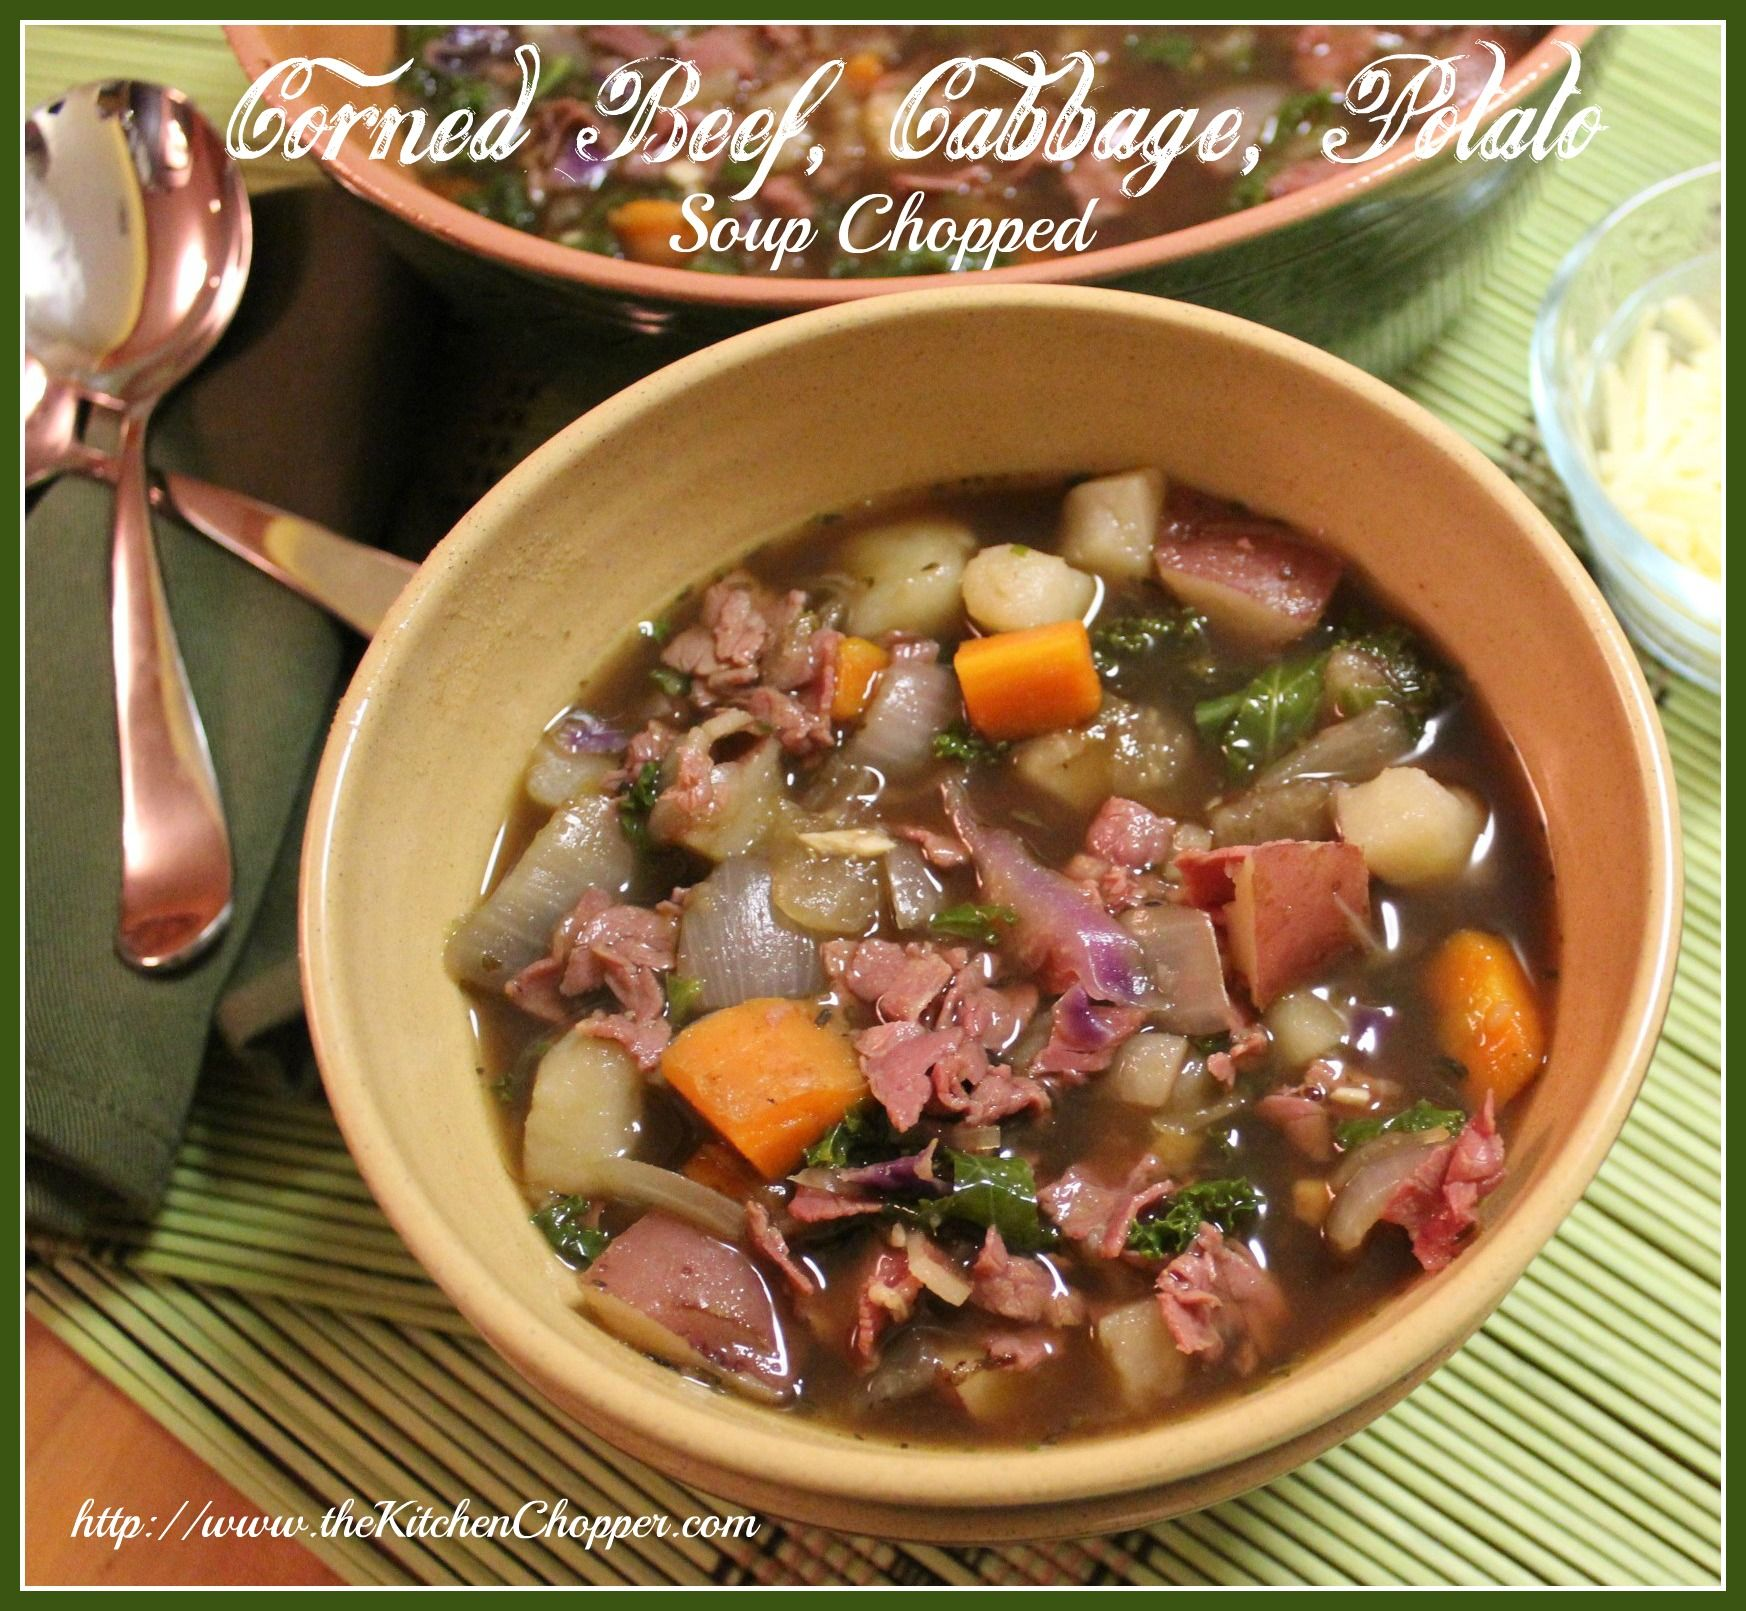 Corned Beef, Cabbage, Potato Soup Chopped on MyRecipeMagic.com